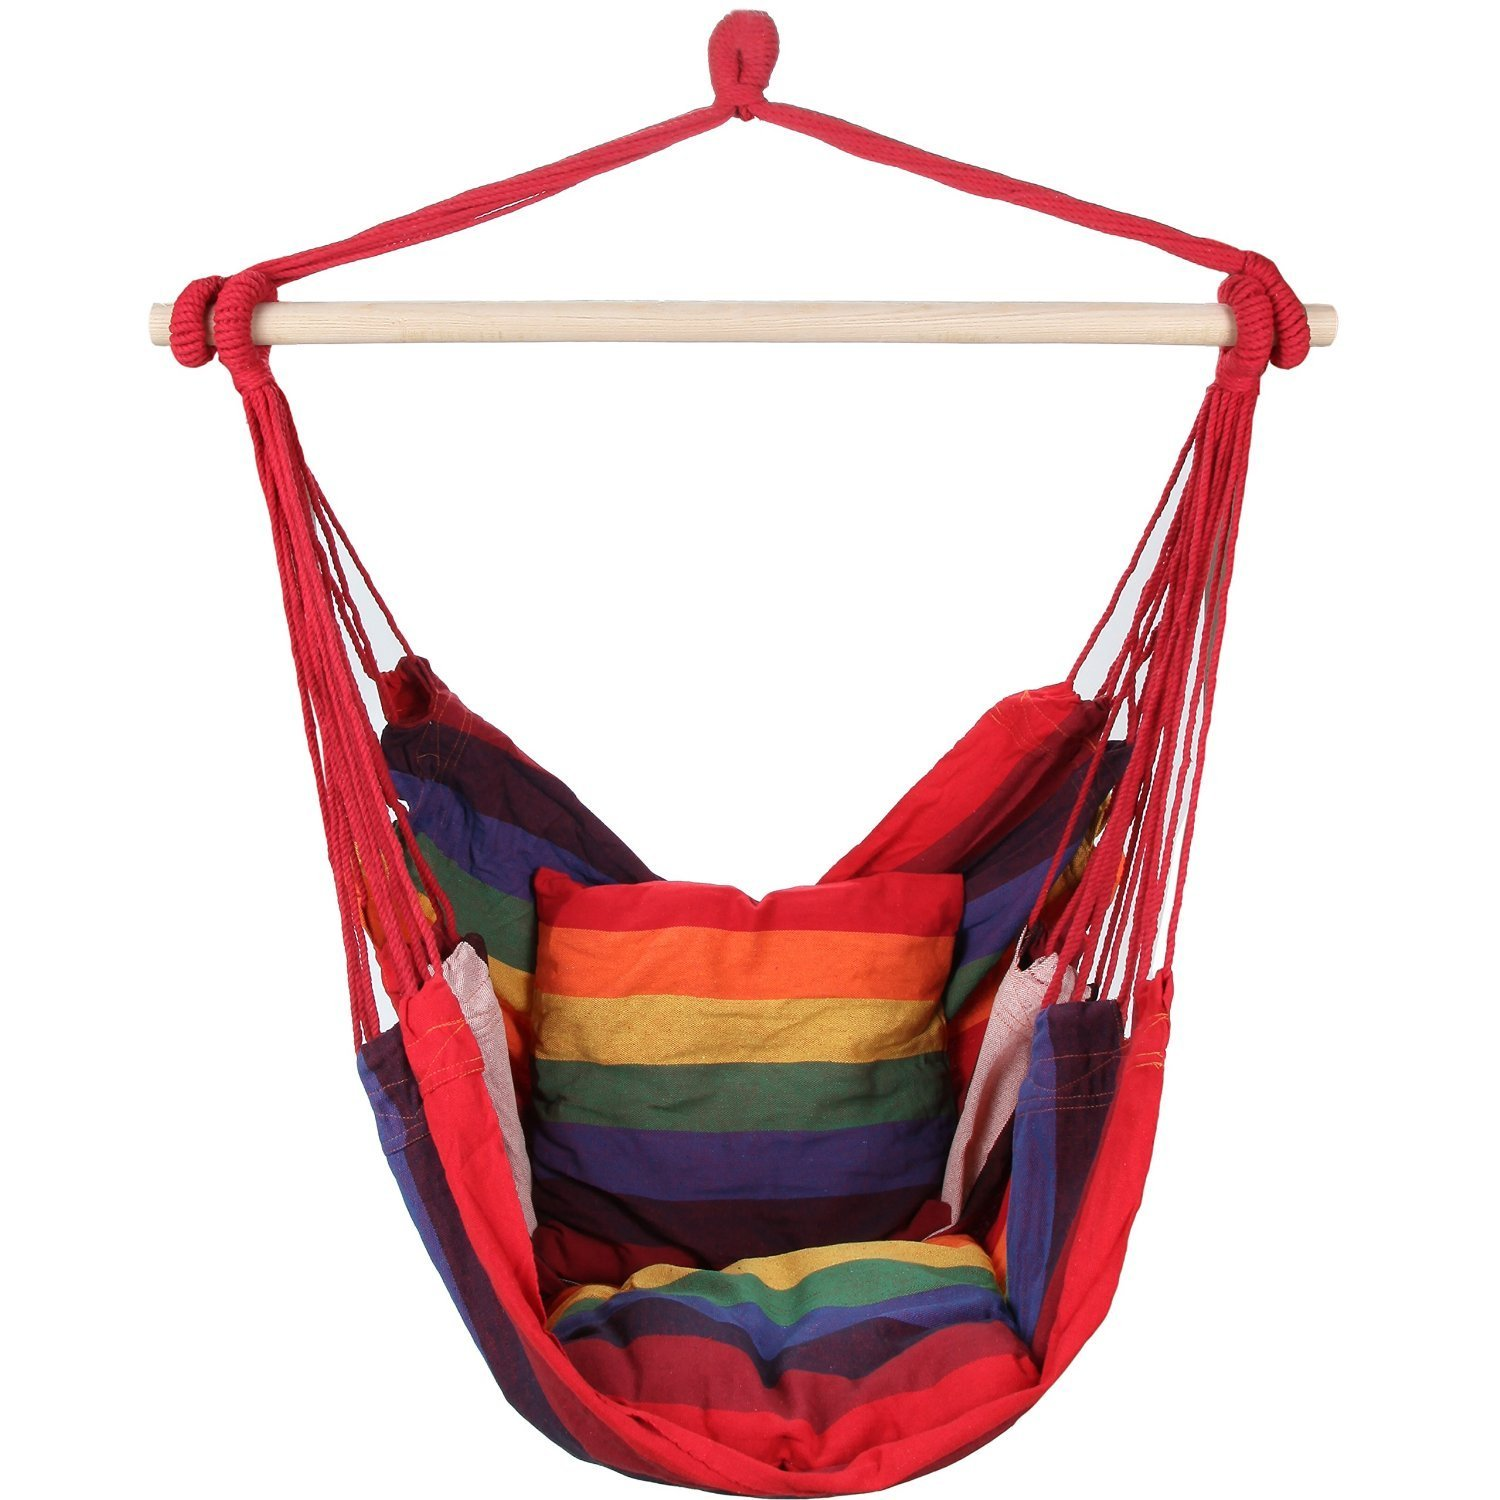 Porch Swing Hammock Patio Swings Outdoor Small Hanging Cotton Chair Rope Single Seat Modern Red Design